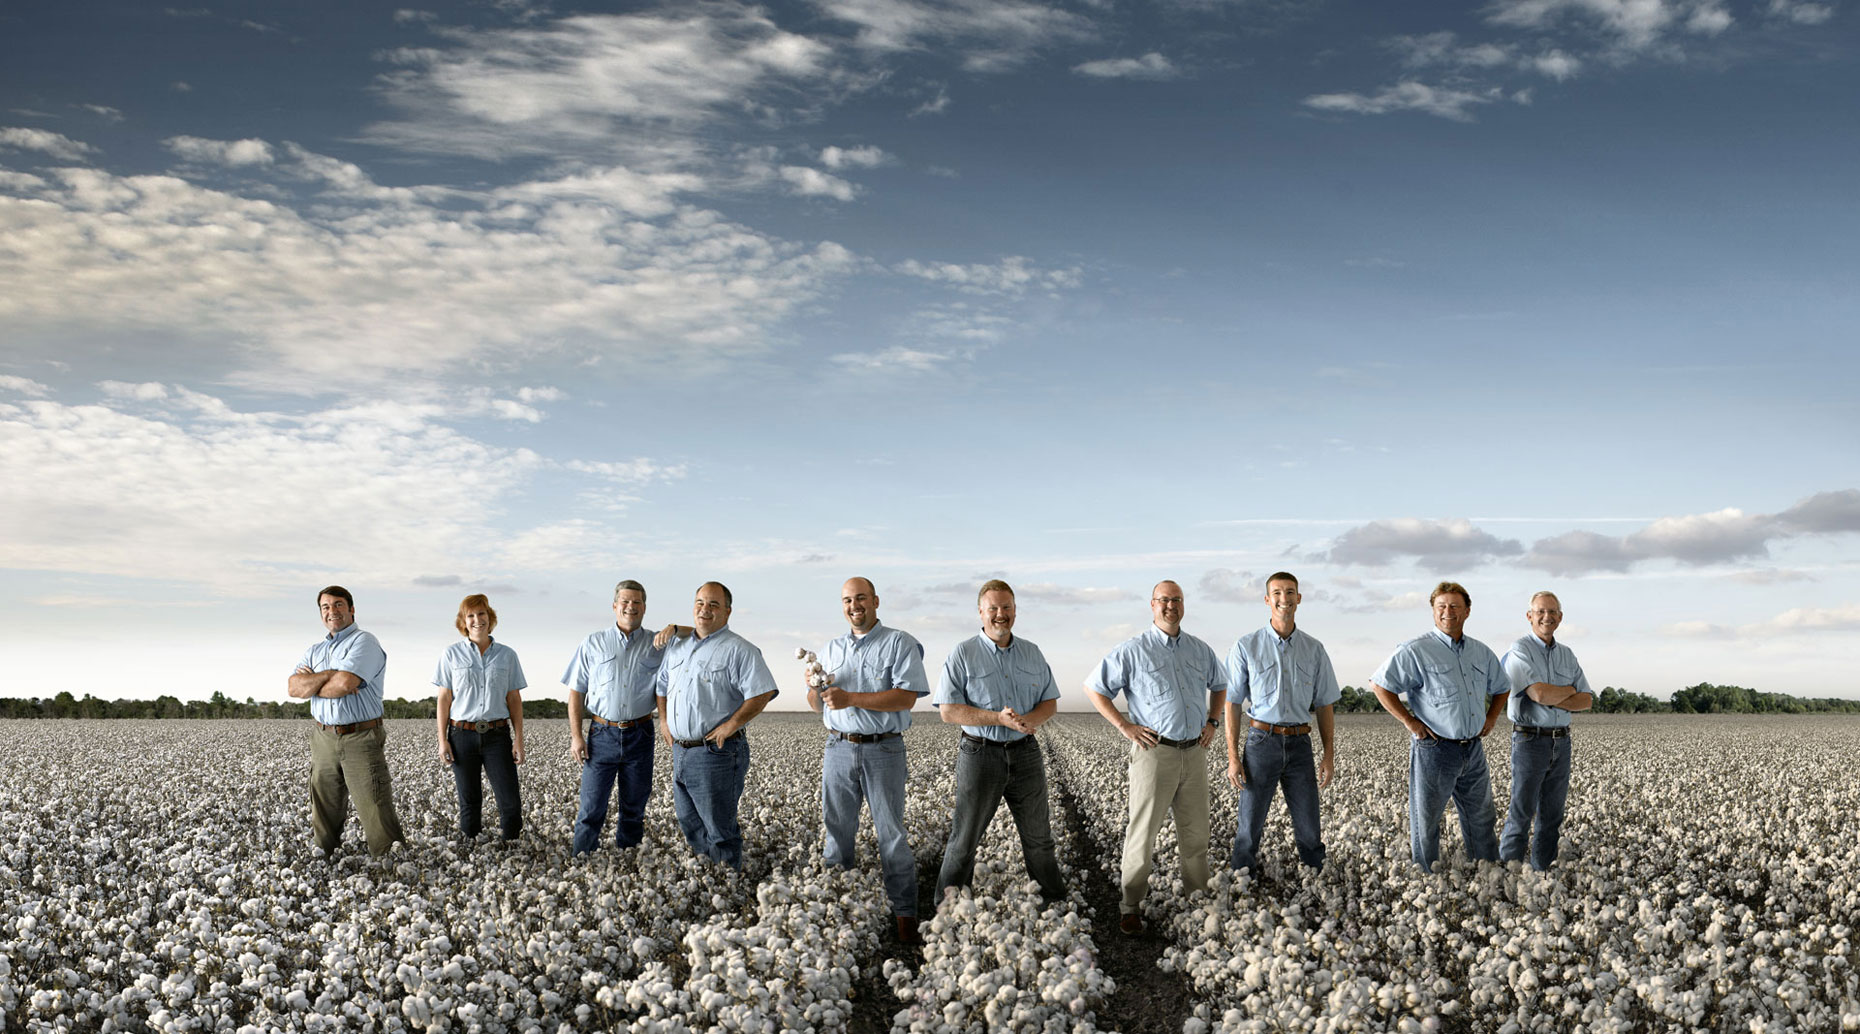 Cotton growers in a field of cotton